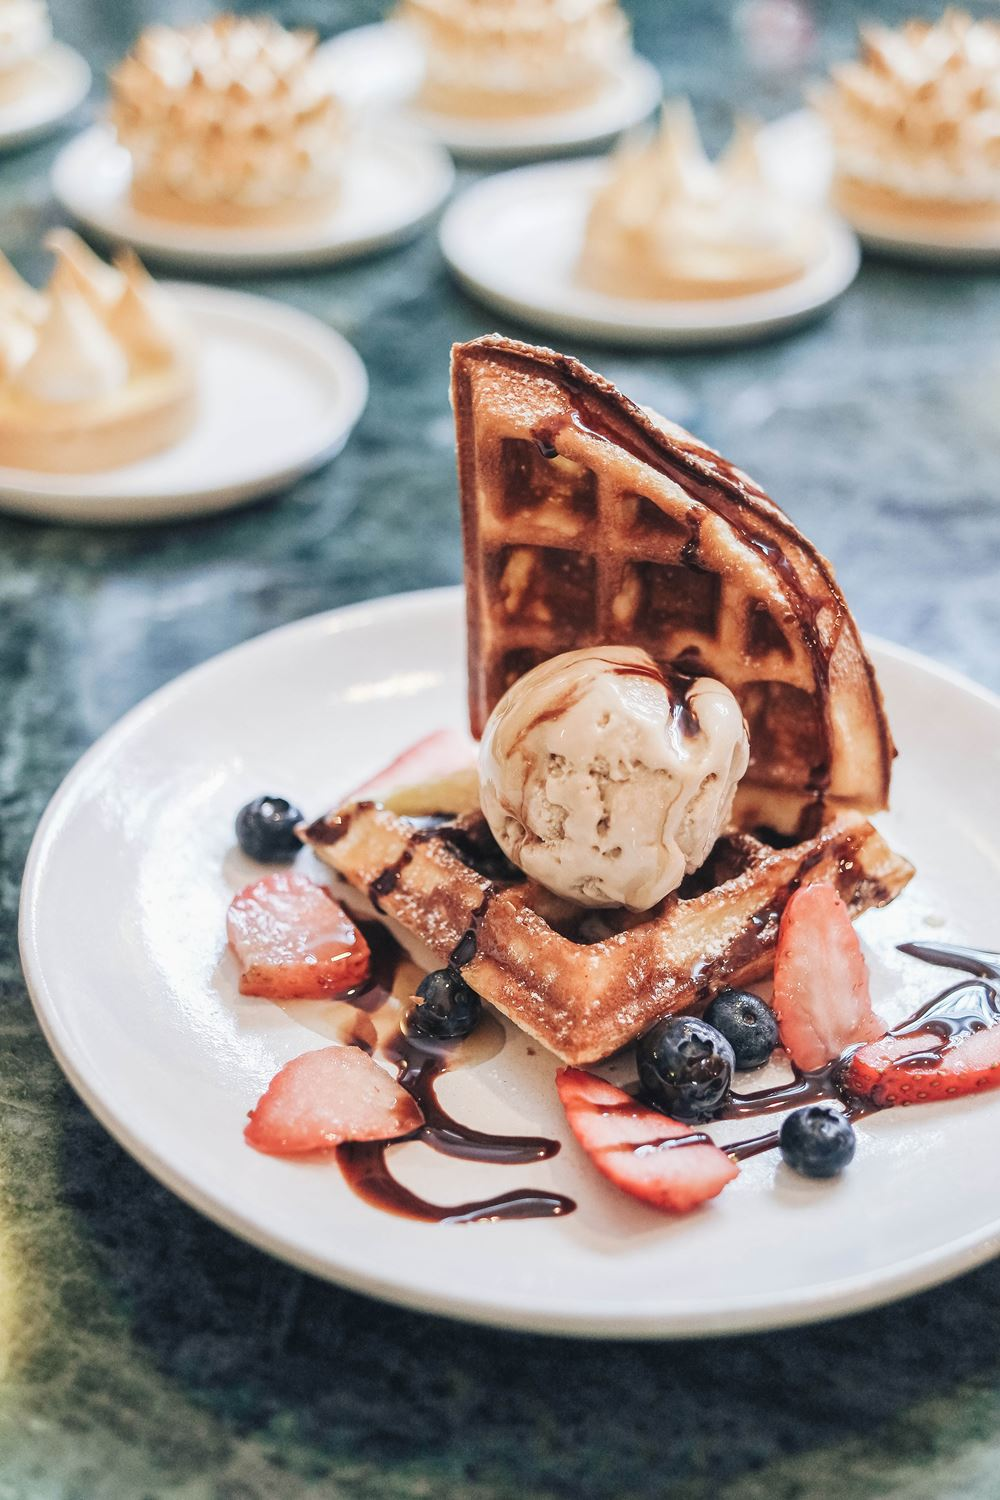 Handcrafted waffles with ice-cream